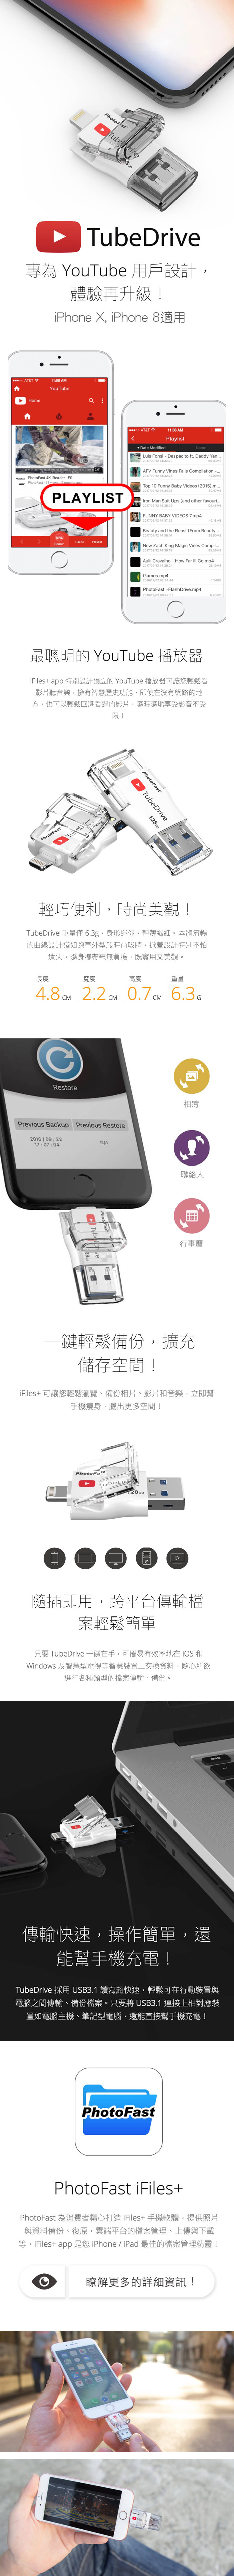 (複製)Photofast | i-FlashDrive MAX GEN2 3.0 雙頭龍 64GB Apple隨身碟